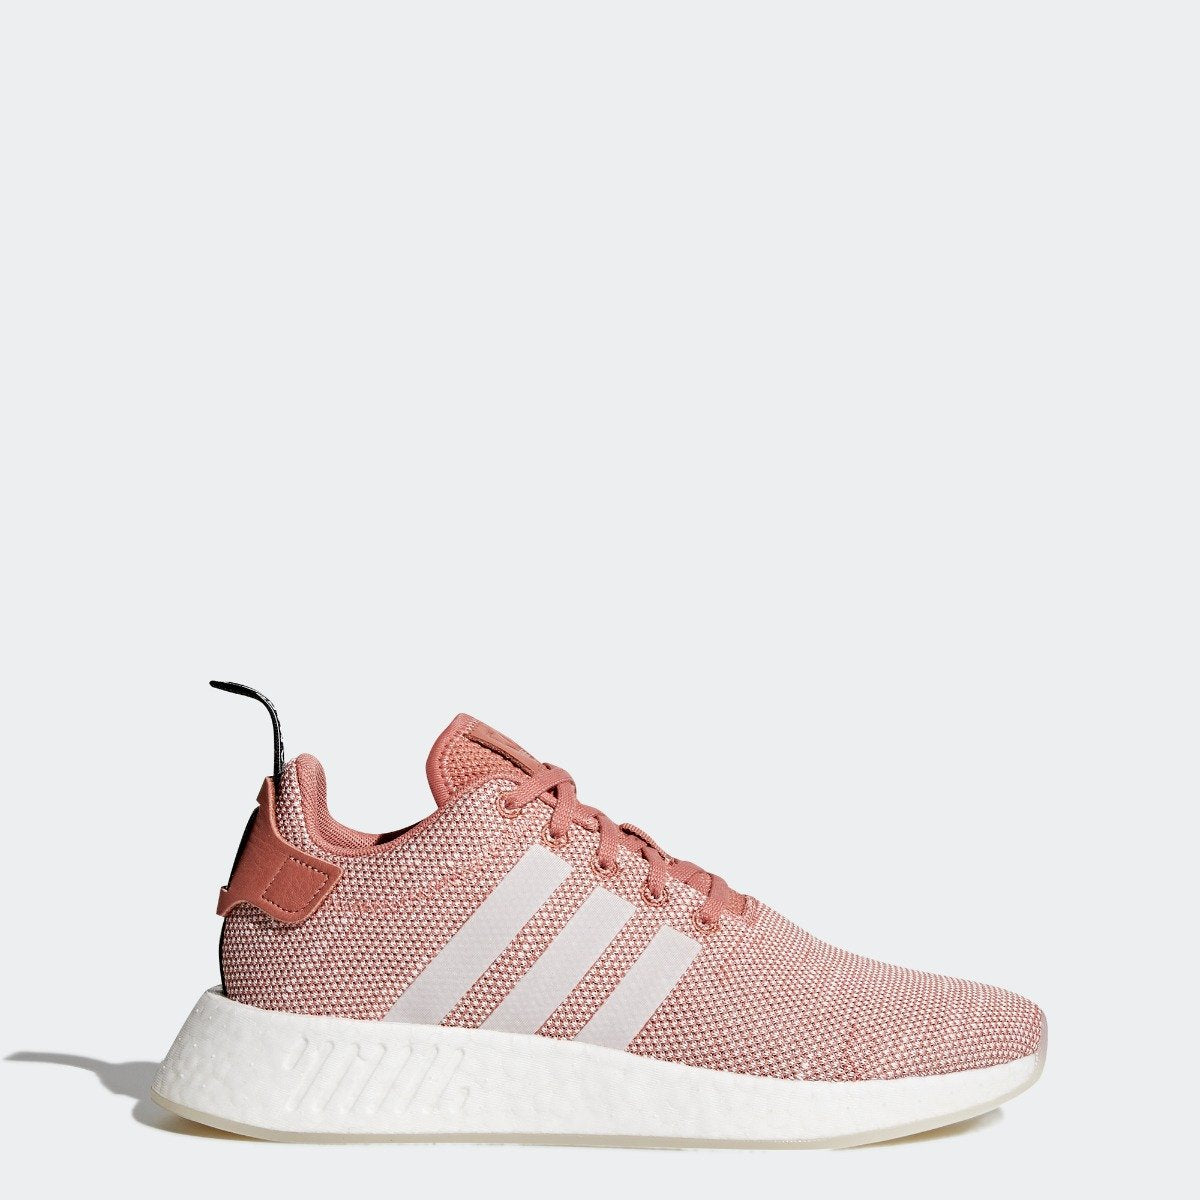 114b12ba4 Women s adidas Originals NMD R2 Shoes Ash Pink and White CQ2007 ...